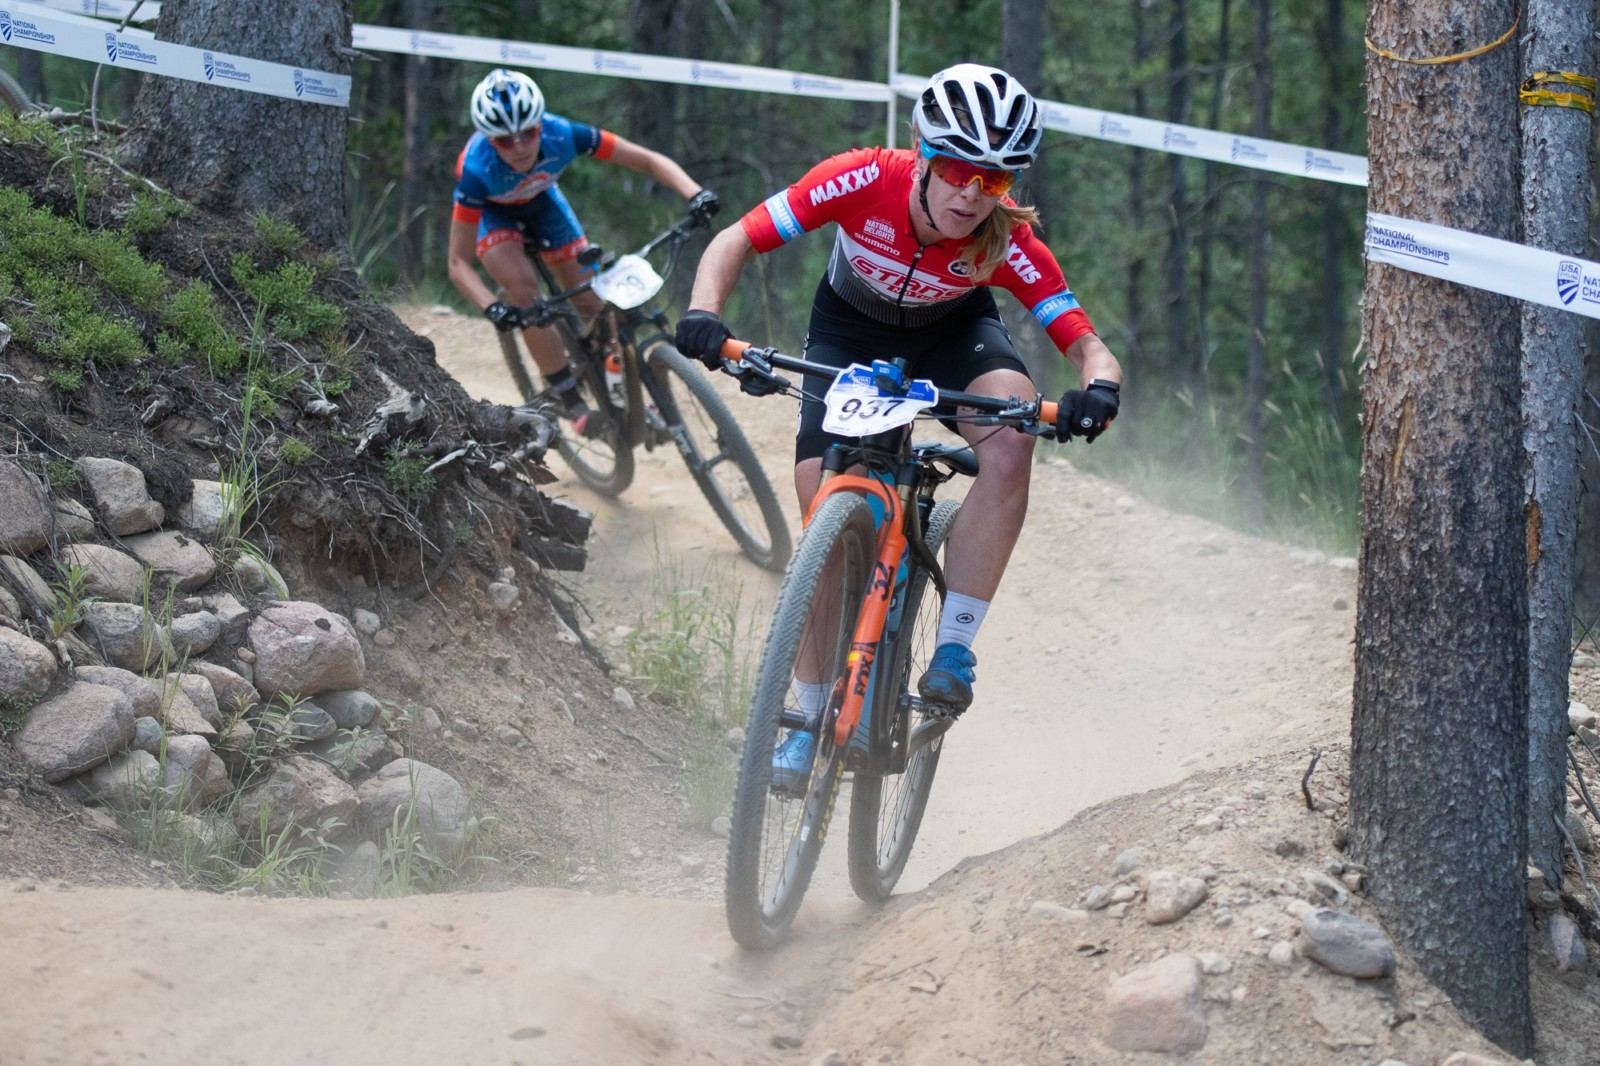 Chloe Woodruff doubled up at the 2019 MTB Nationals win a